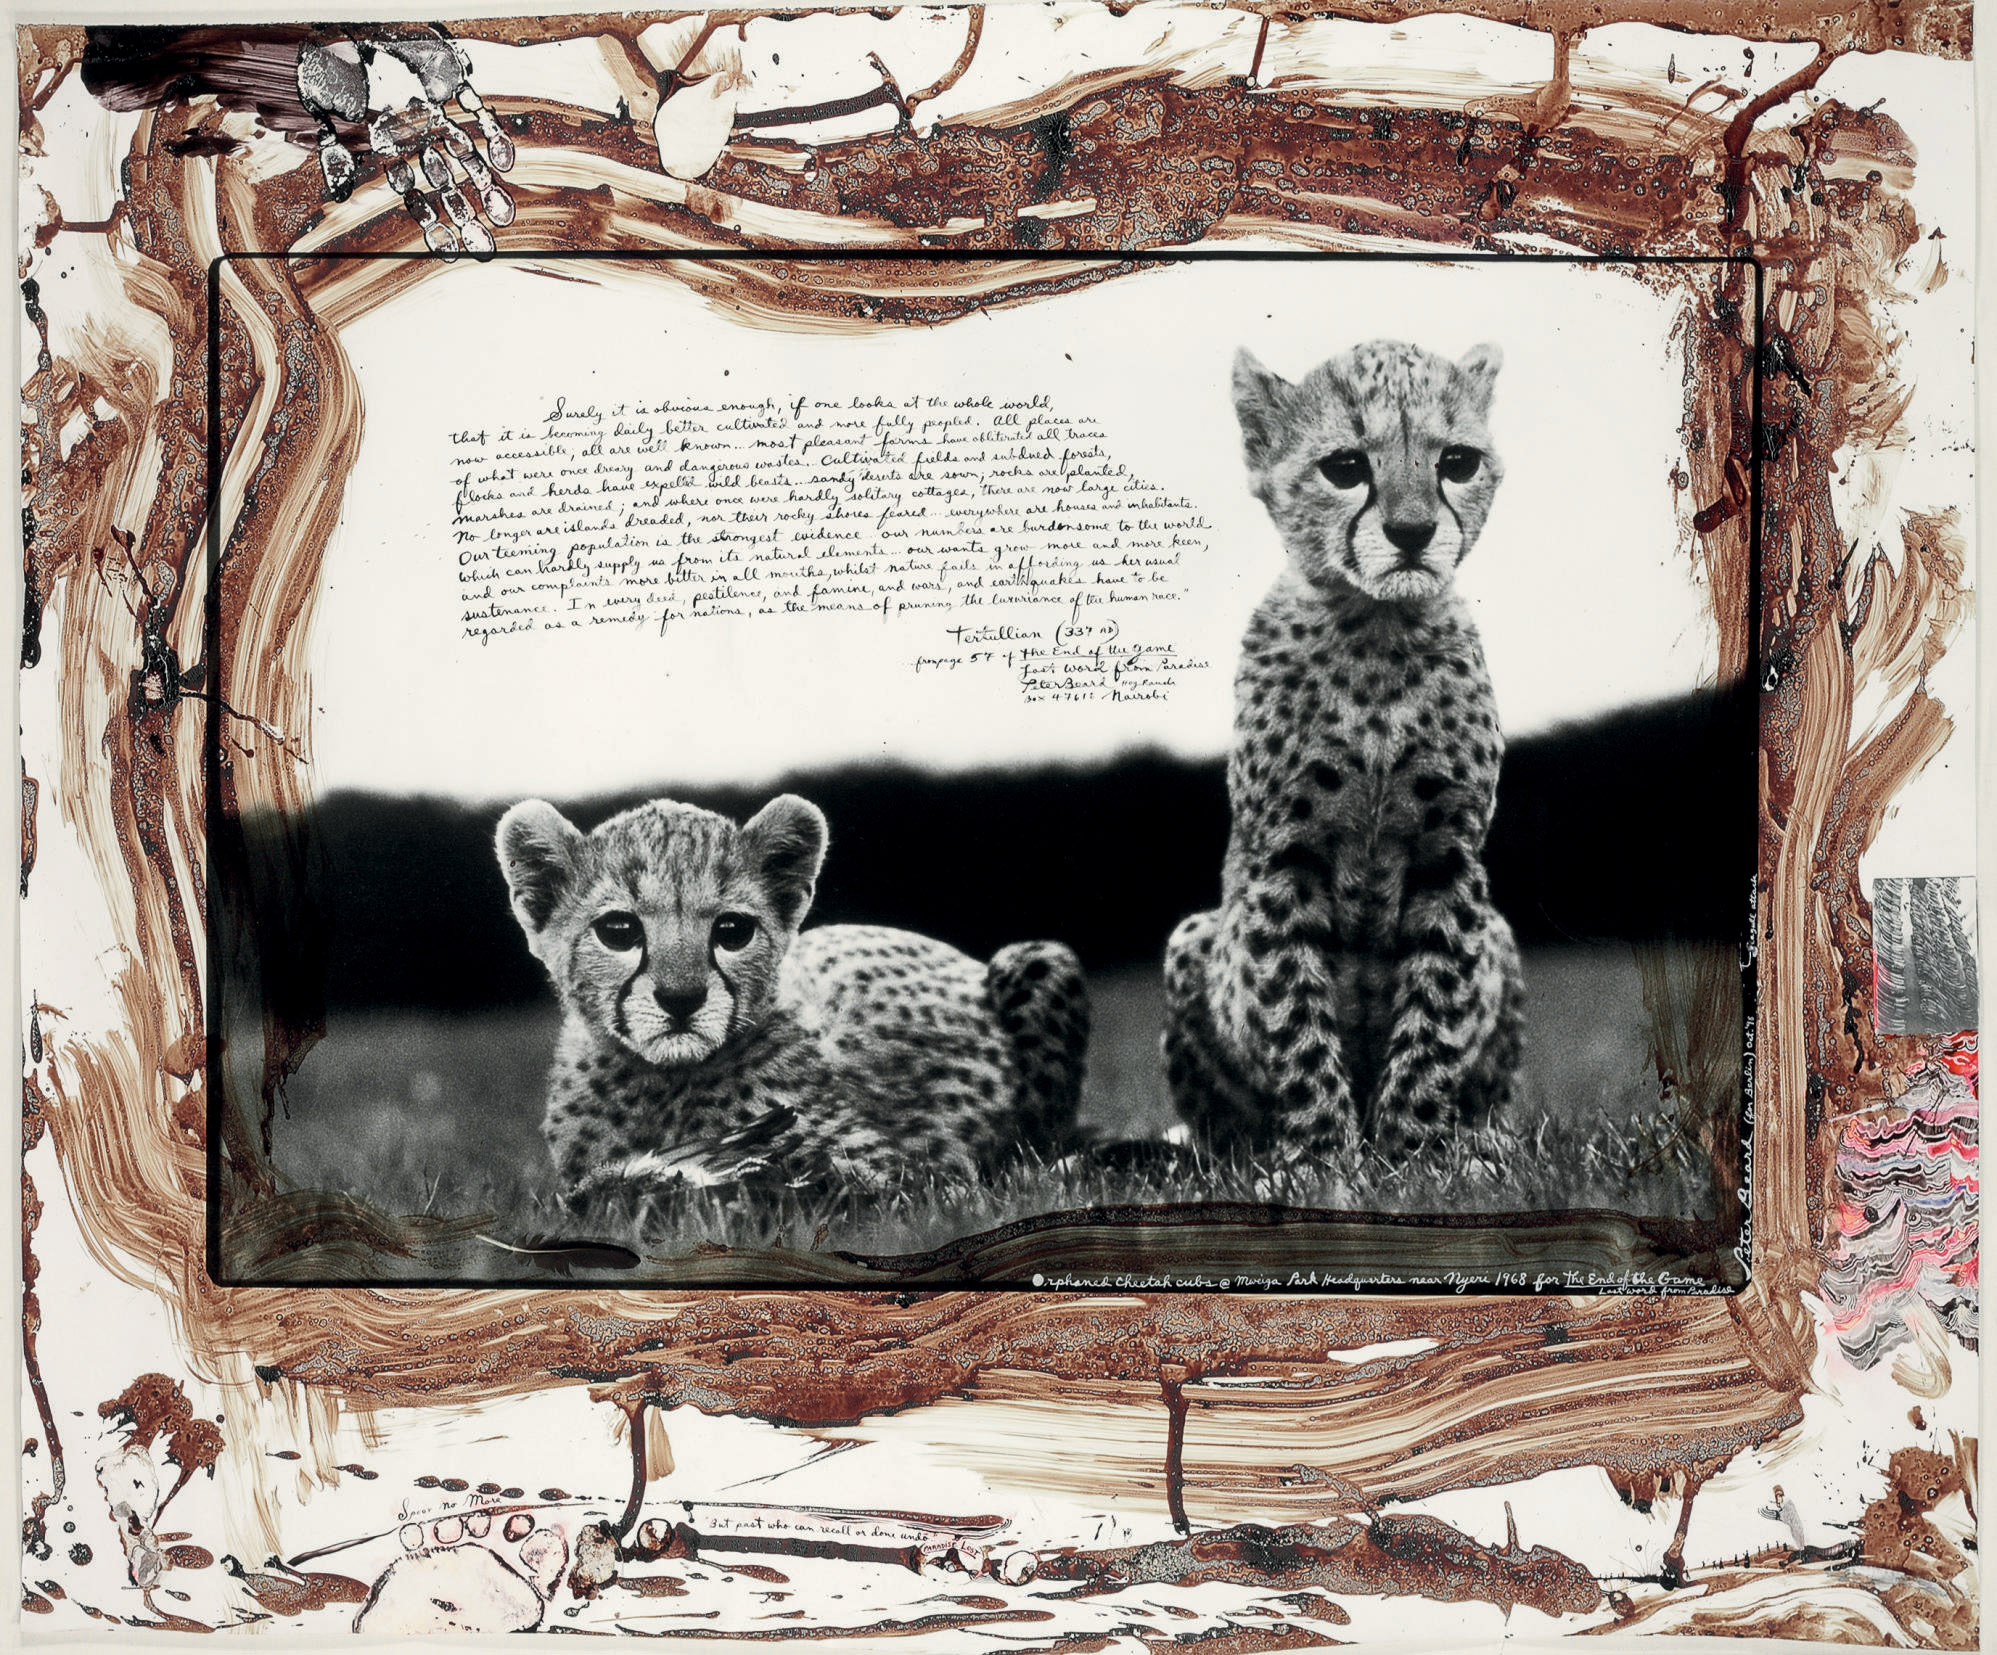 Orphaned Cheetah Cubs, from The End of the Game, 1968